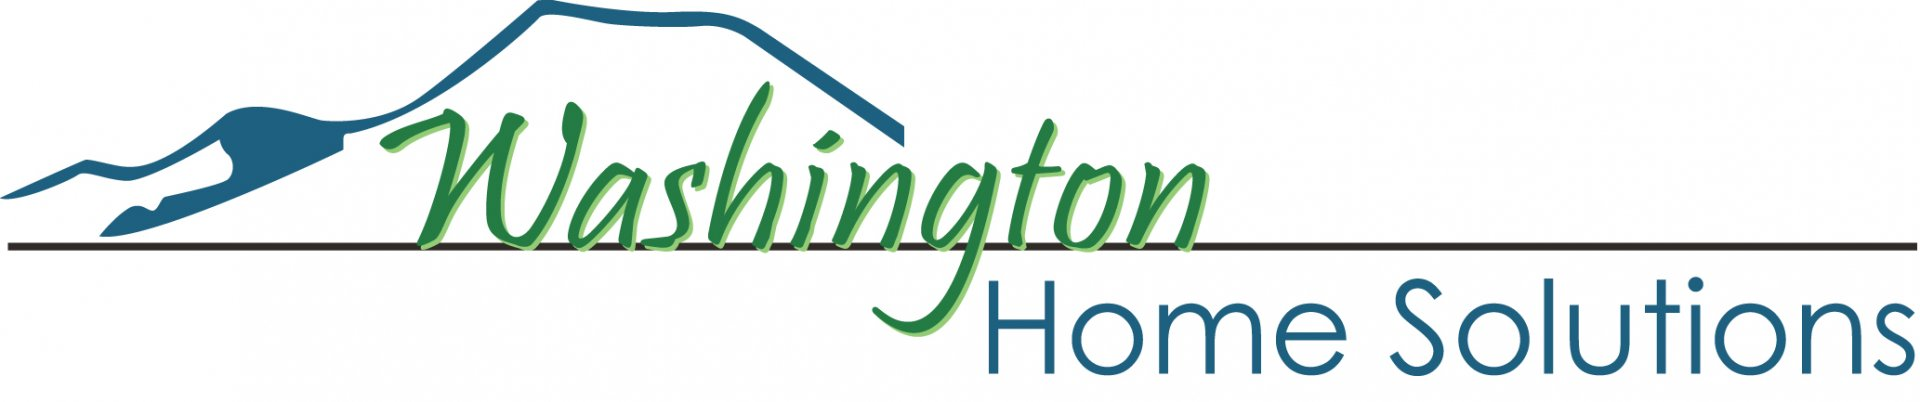 Washington Home Solutions  logo